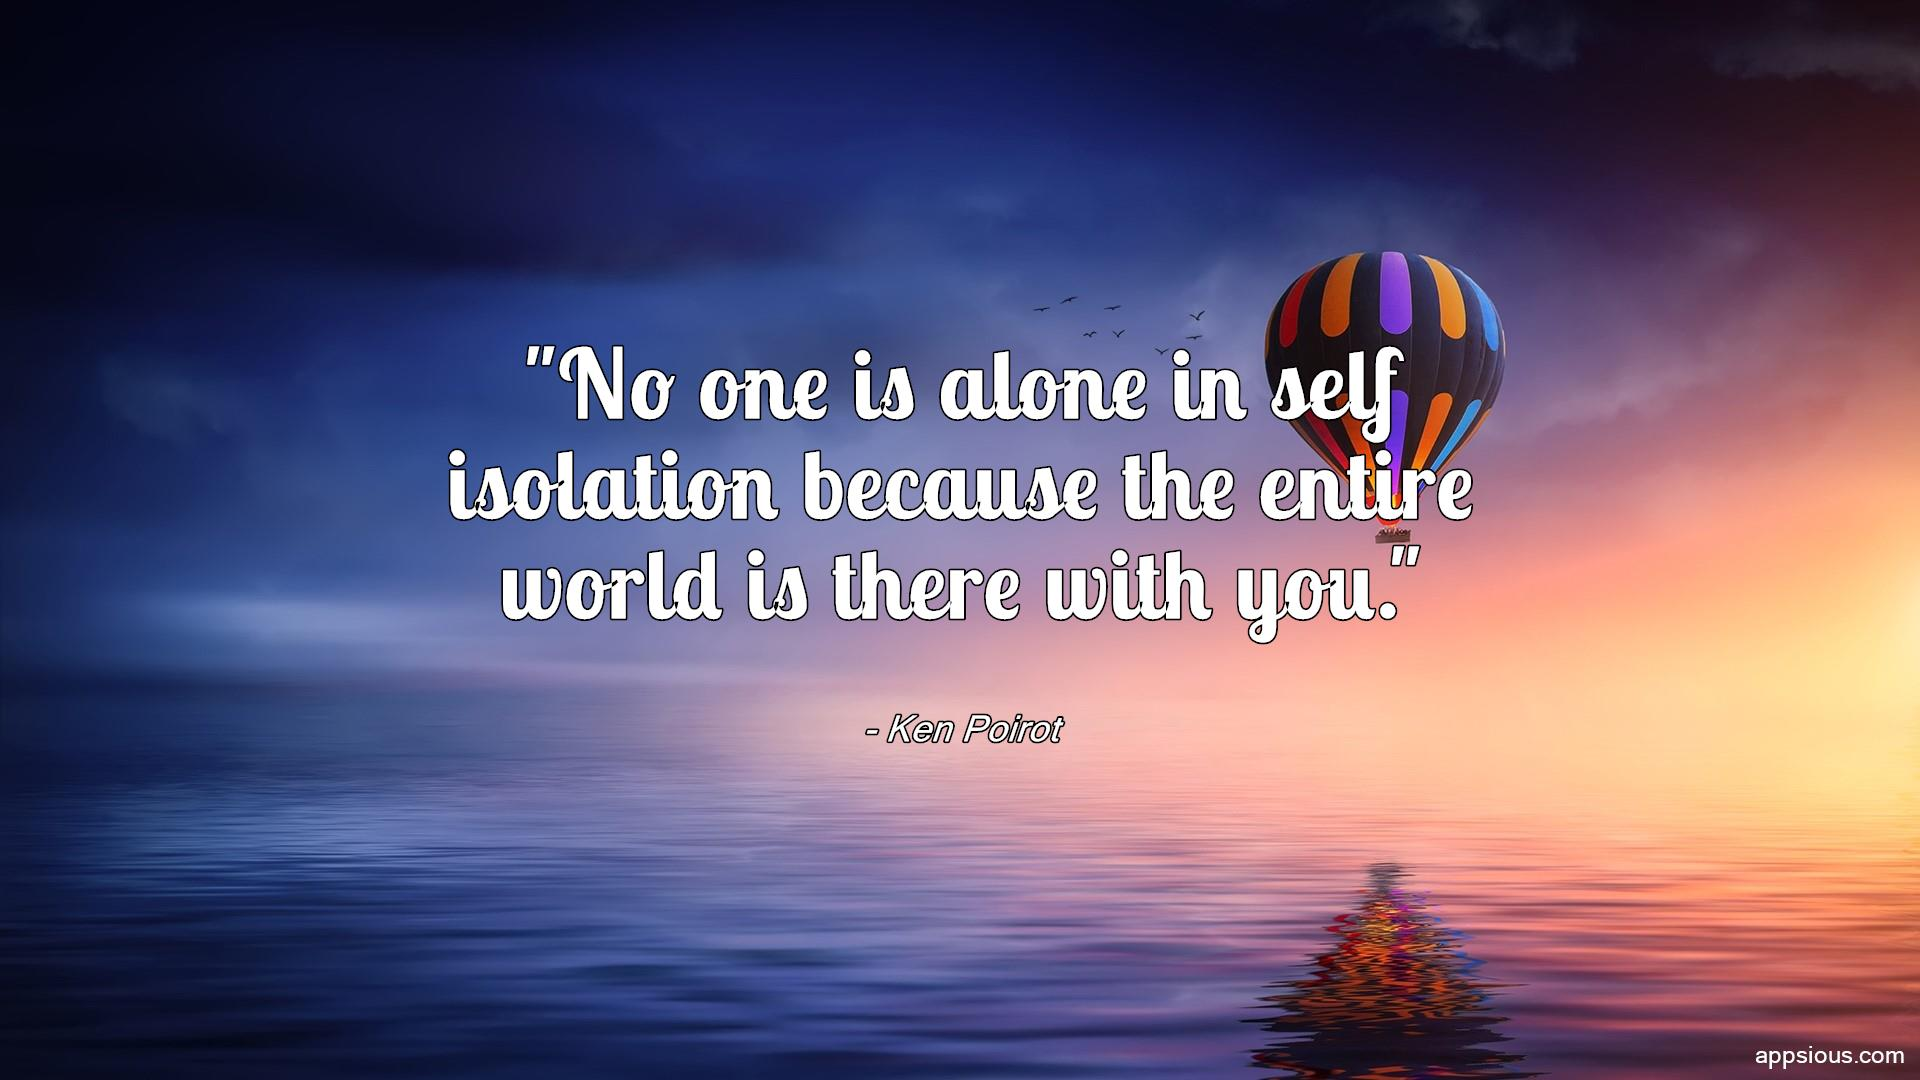 No one is alone in self isolation because the entire world is there with you.